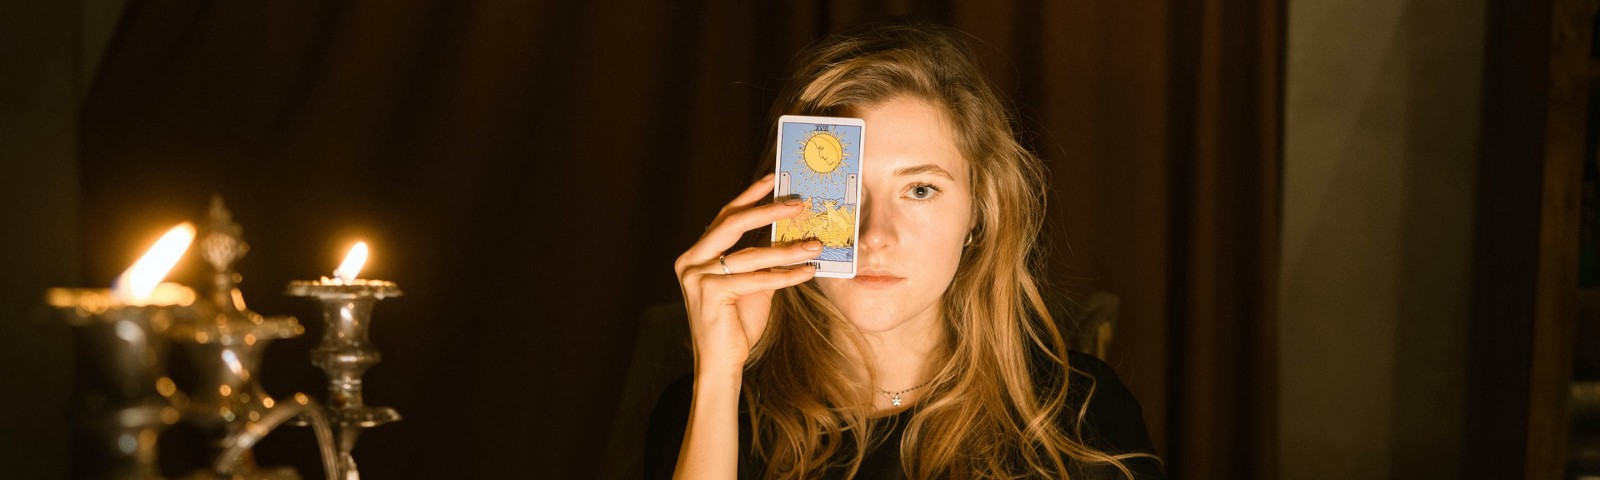 Woman holding tarot card up to her face